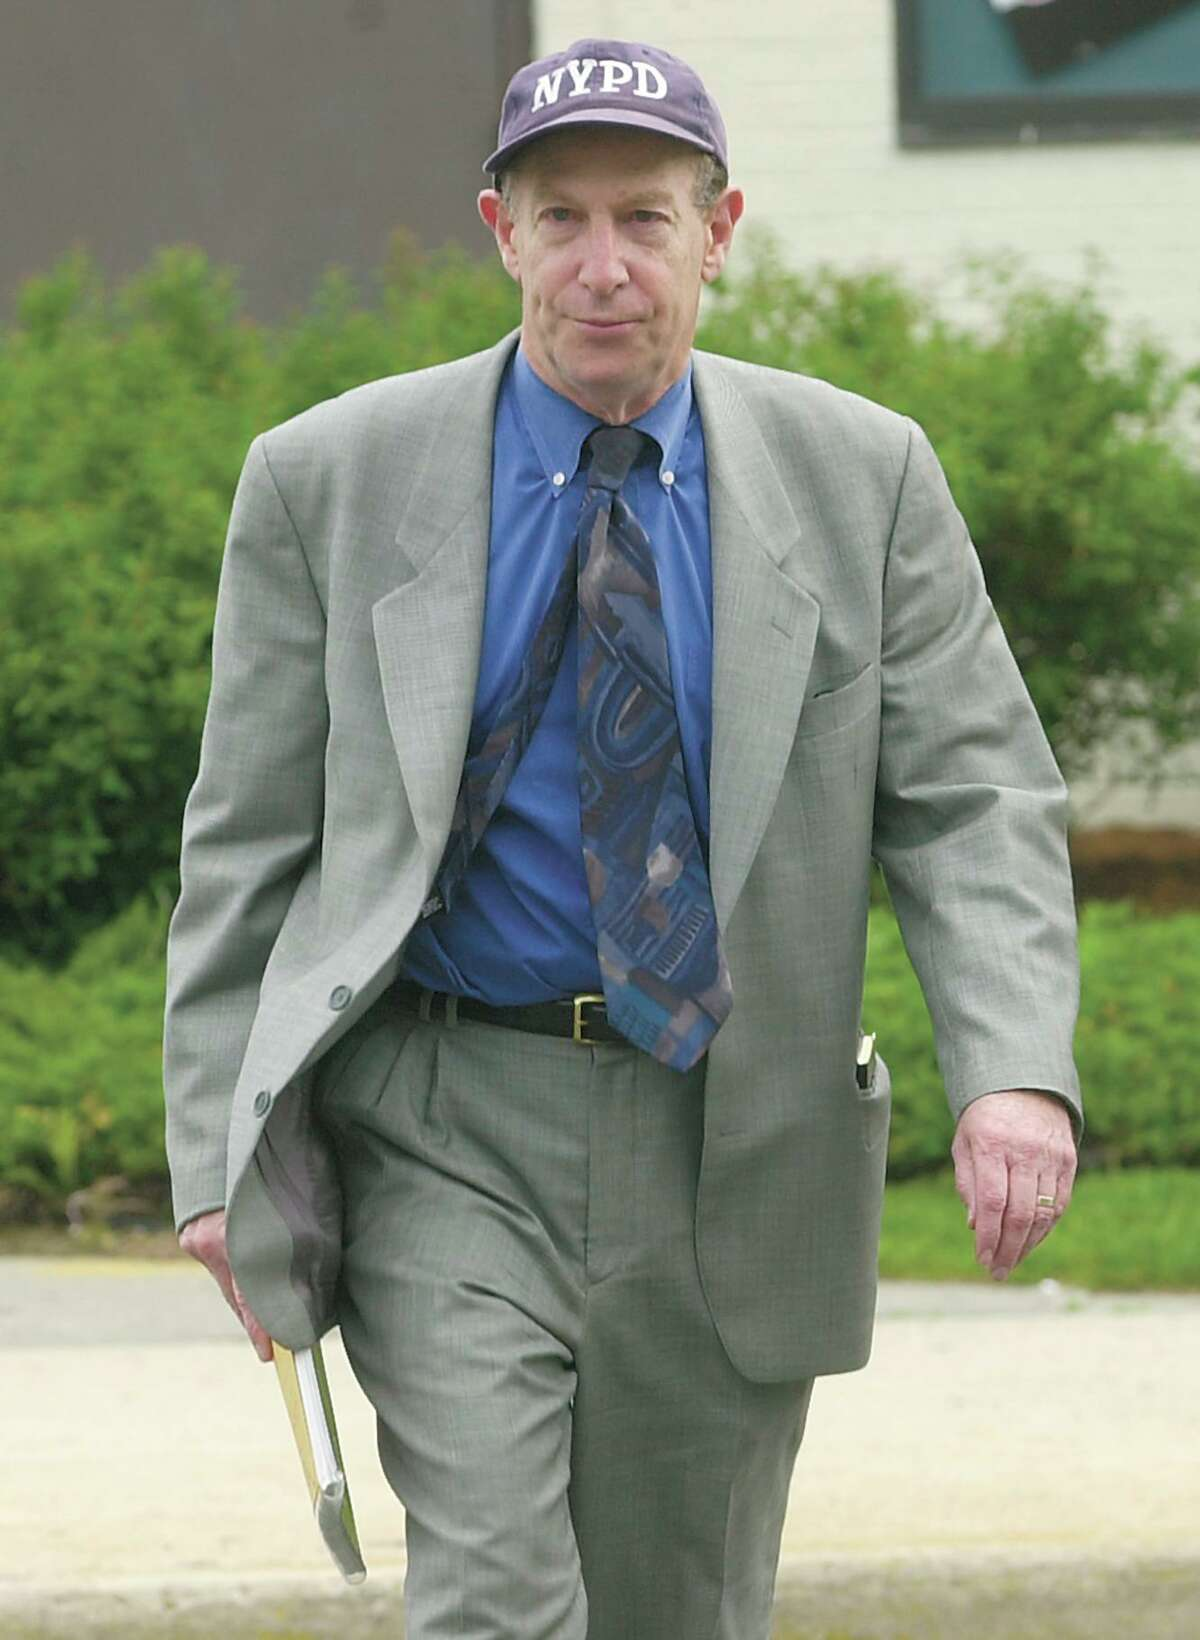 Len Levitt on his way to the Norwalk courthouse for the Skakel Trial in 2002. Levitt died at age 79 in his Stamford, Conn., home in May 18, 2020.